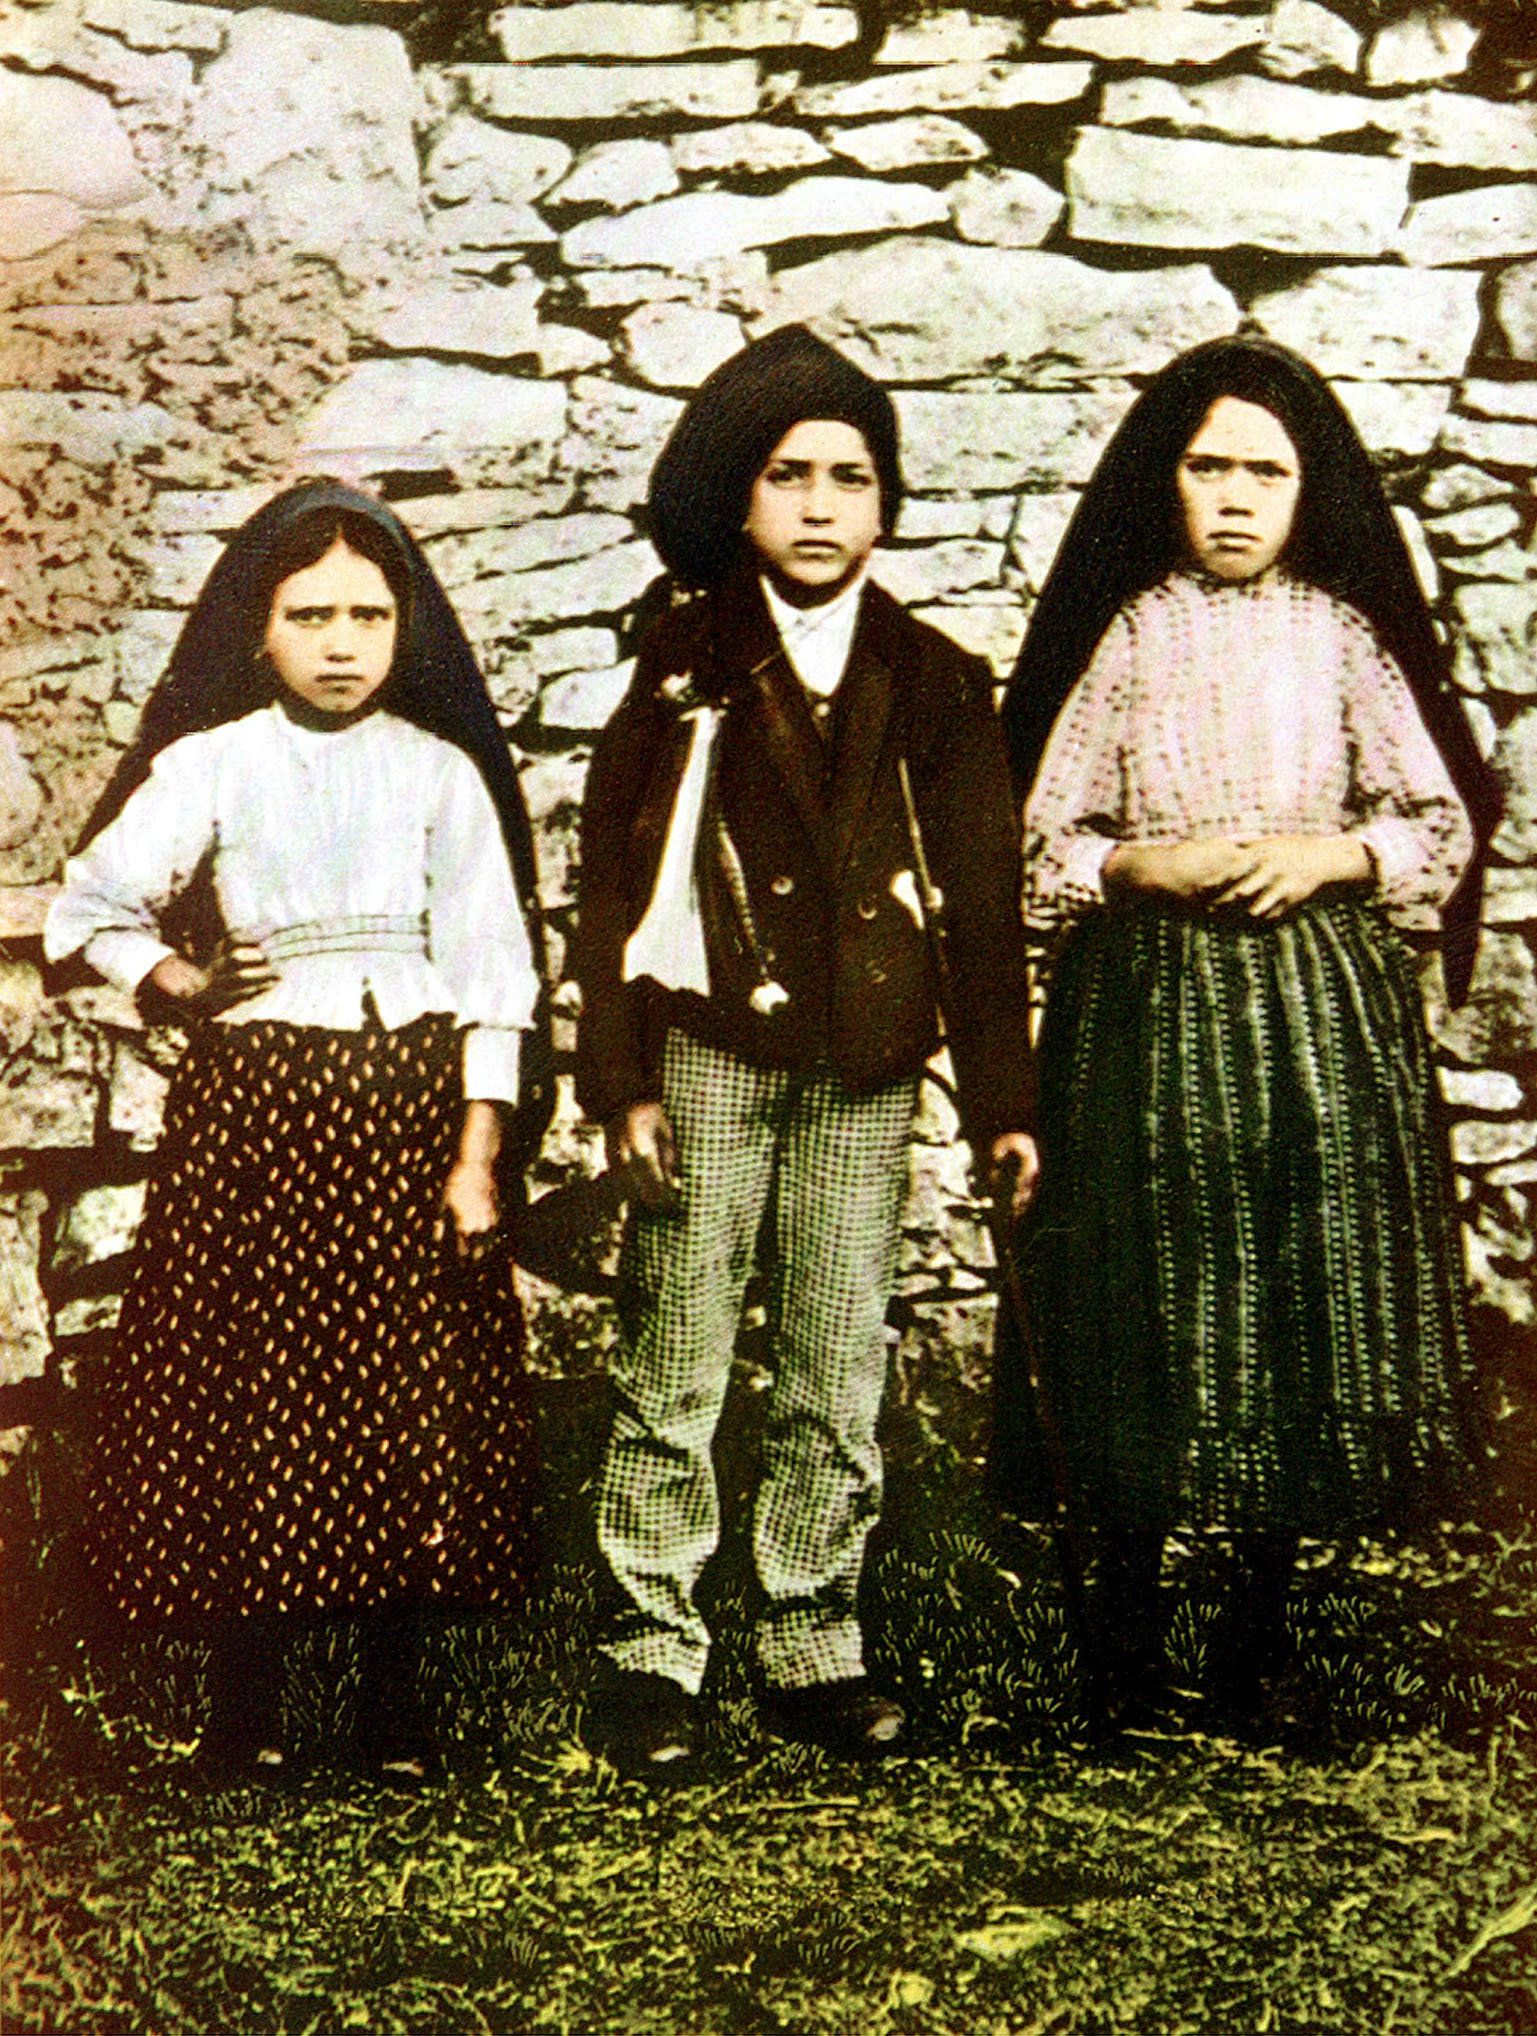 UNDATED FILE PHOTO - Three young shepherds, Jacinta Marto (L), Francisco Marto (C) and Lucia dos Santos who during the Spring of 1916 saw the Holy Mary over a tree in Fatima. [Pope John Paul II] signed Monday morning the edict for the beatification of Jacinta and Francisco. **DIGITAL IMAGE** **POOR QUALITY DOCUMENT**